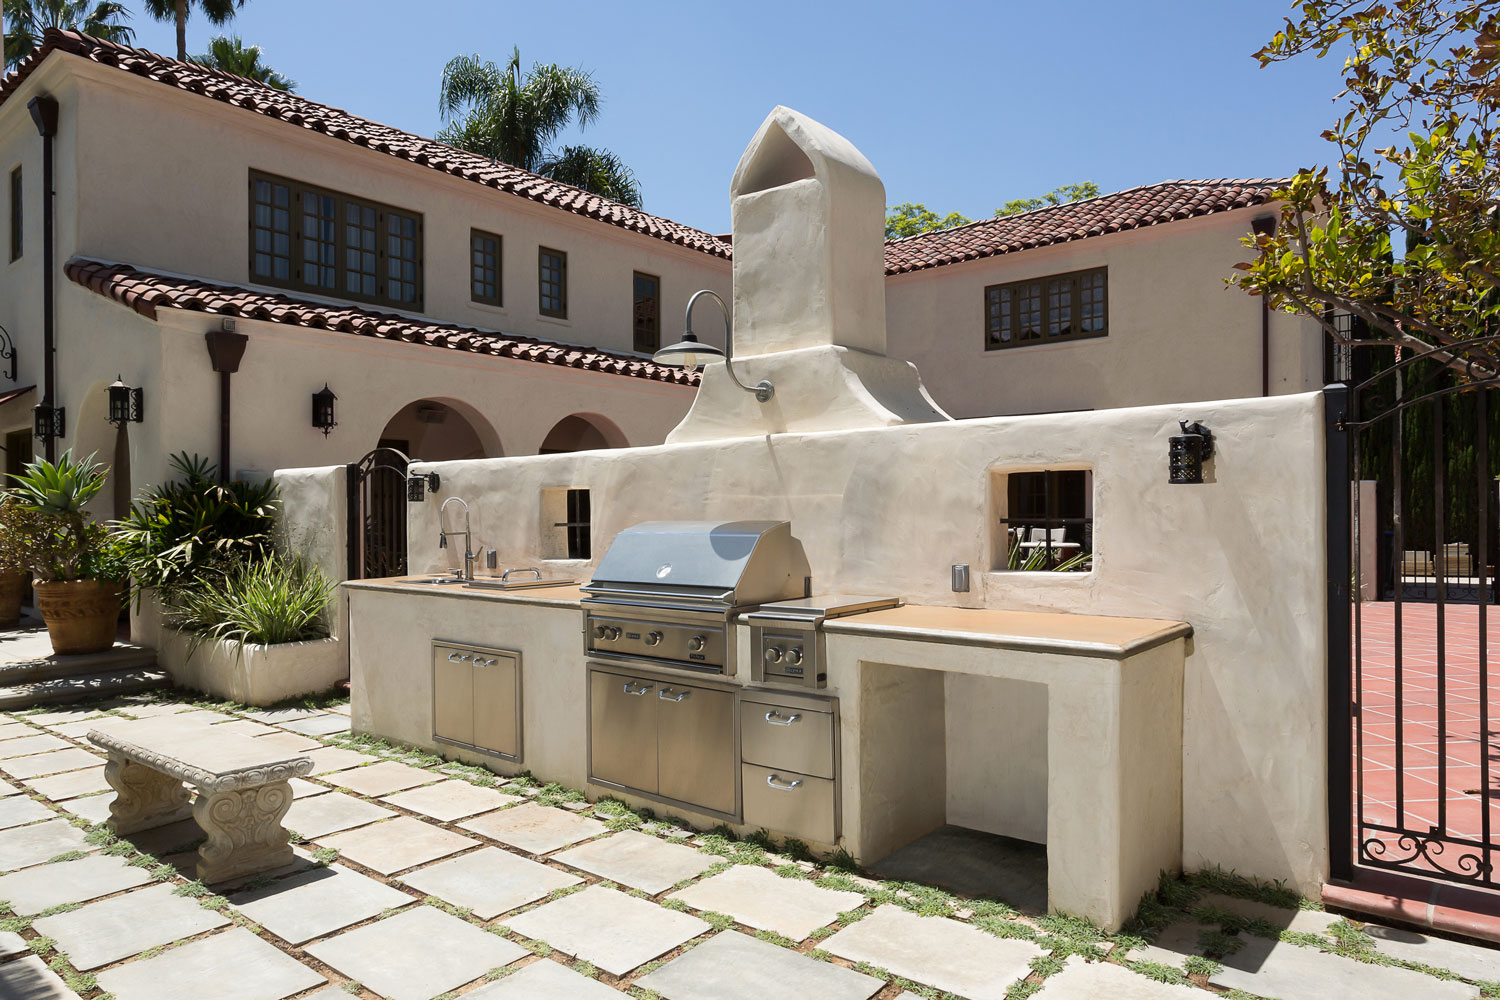 chelsea-outdoor-bbq-barbeque-spanish-style.jpg